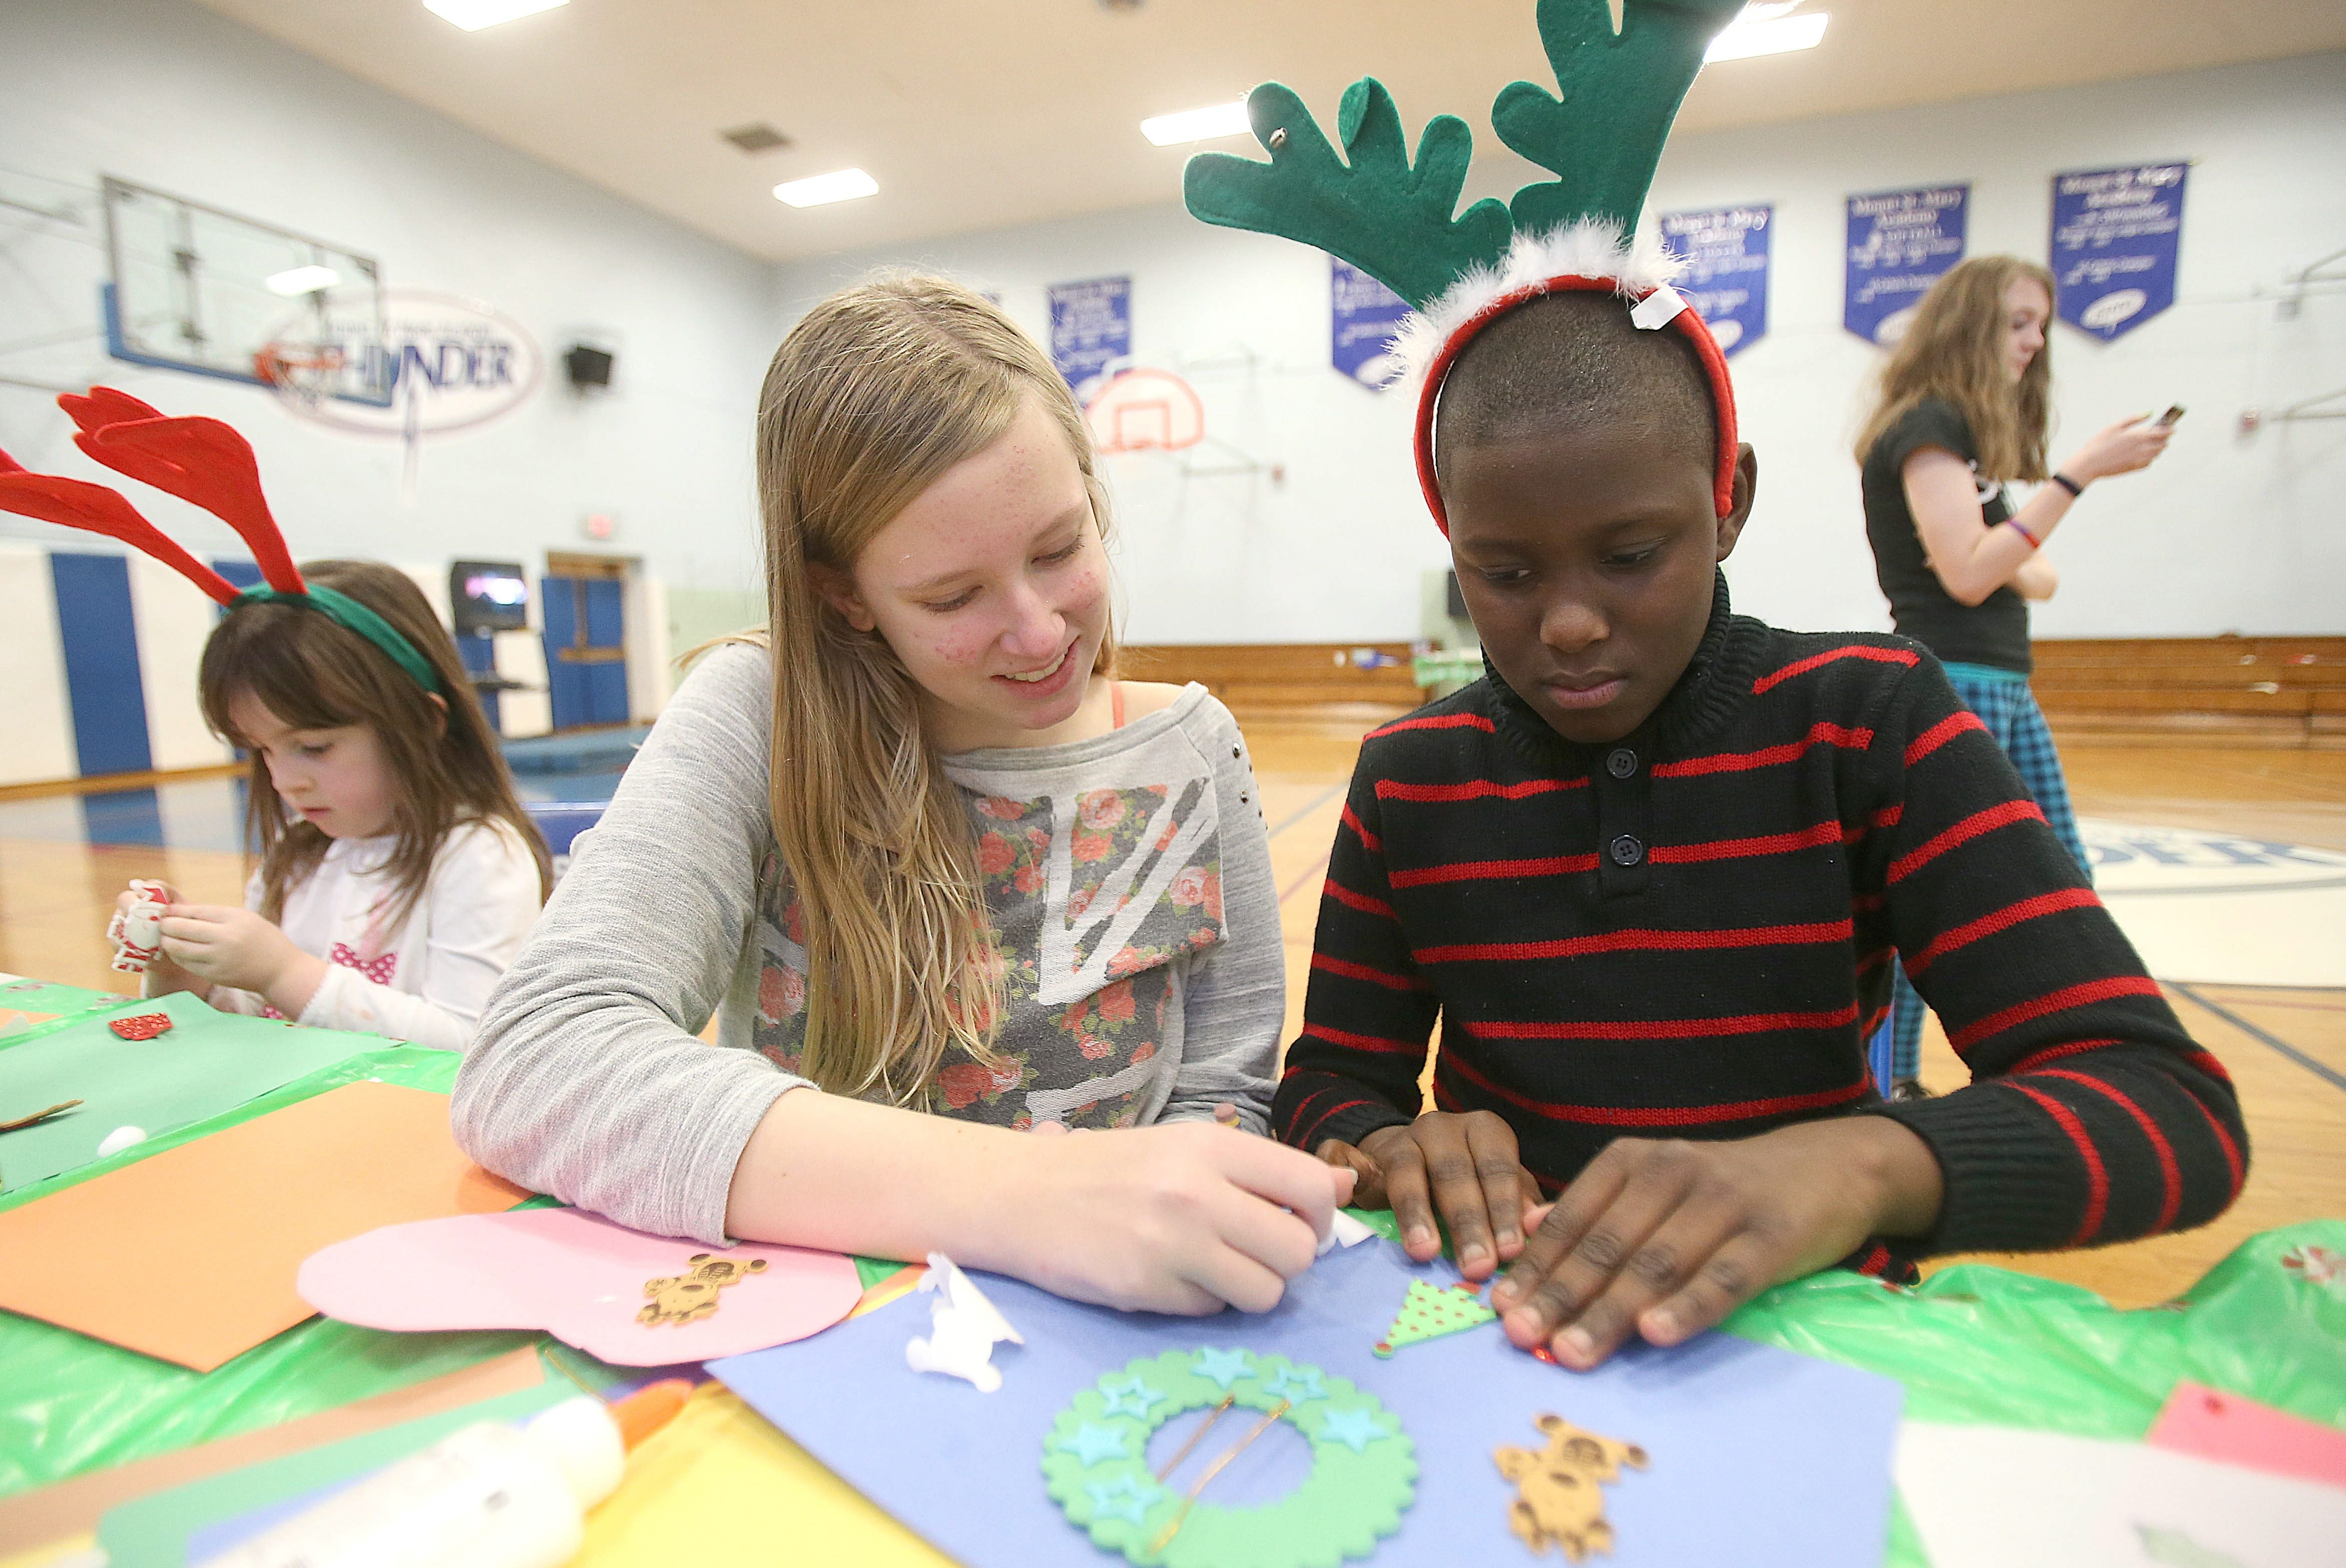 Mount St. Mary's ninth-grader Chloe Matecki checks the progress of 10-year-old Calvin Dyson's ornament during the Holiday Drop and Shop event at the school on Sunday. Proceeds from the program benefited the school's Alumni Scholarship.